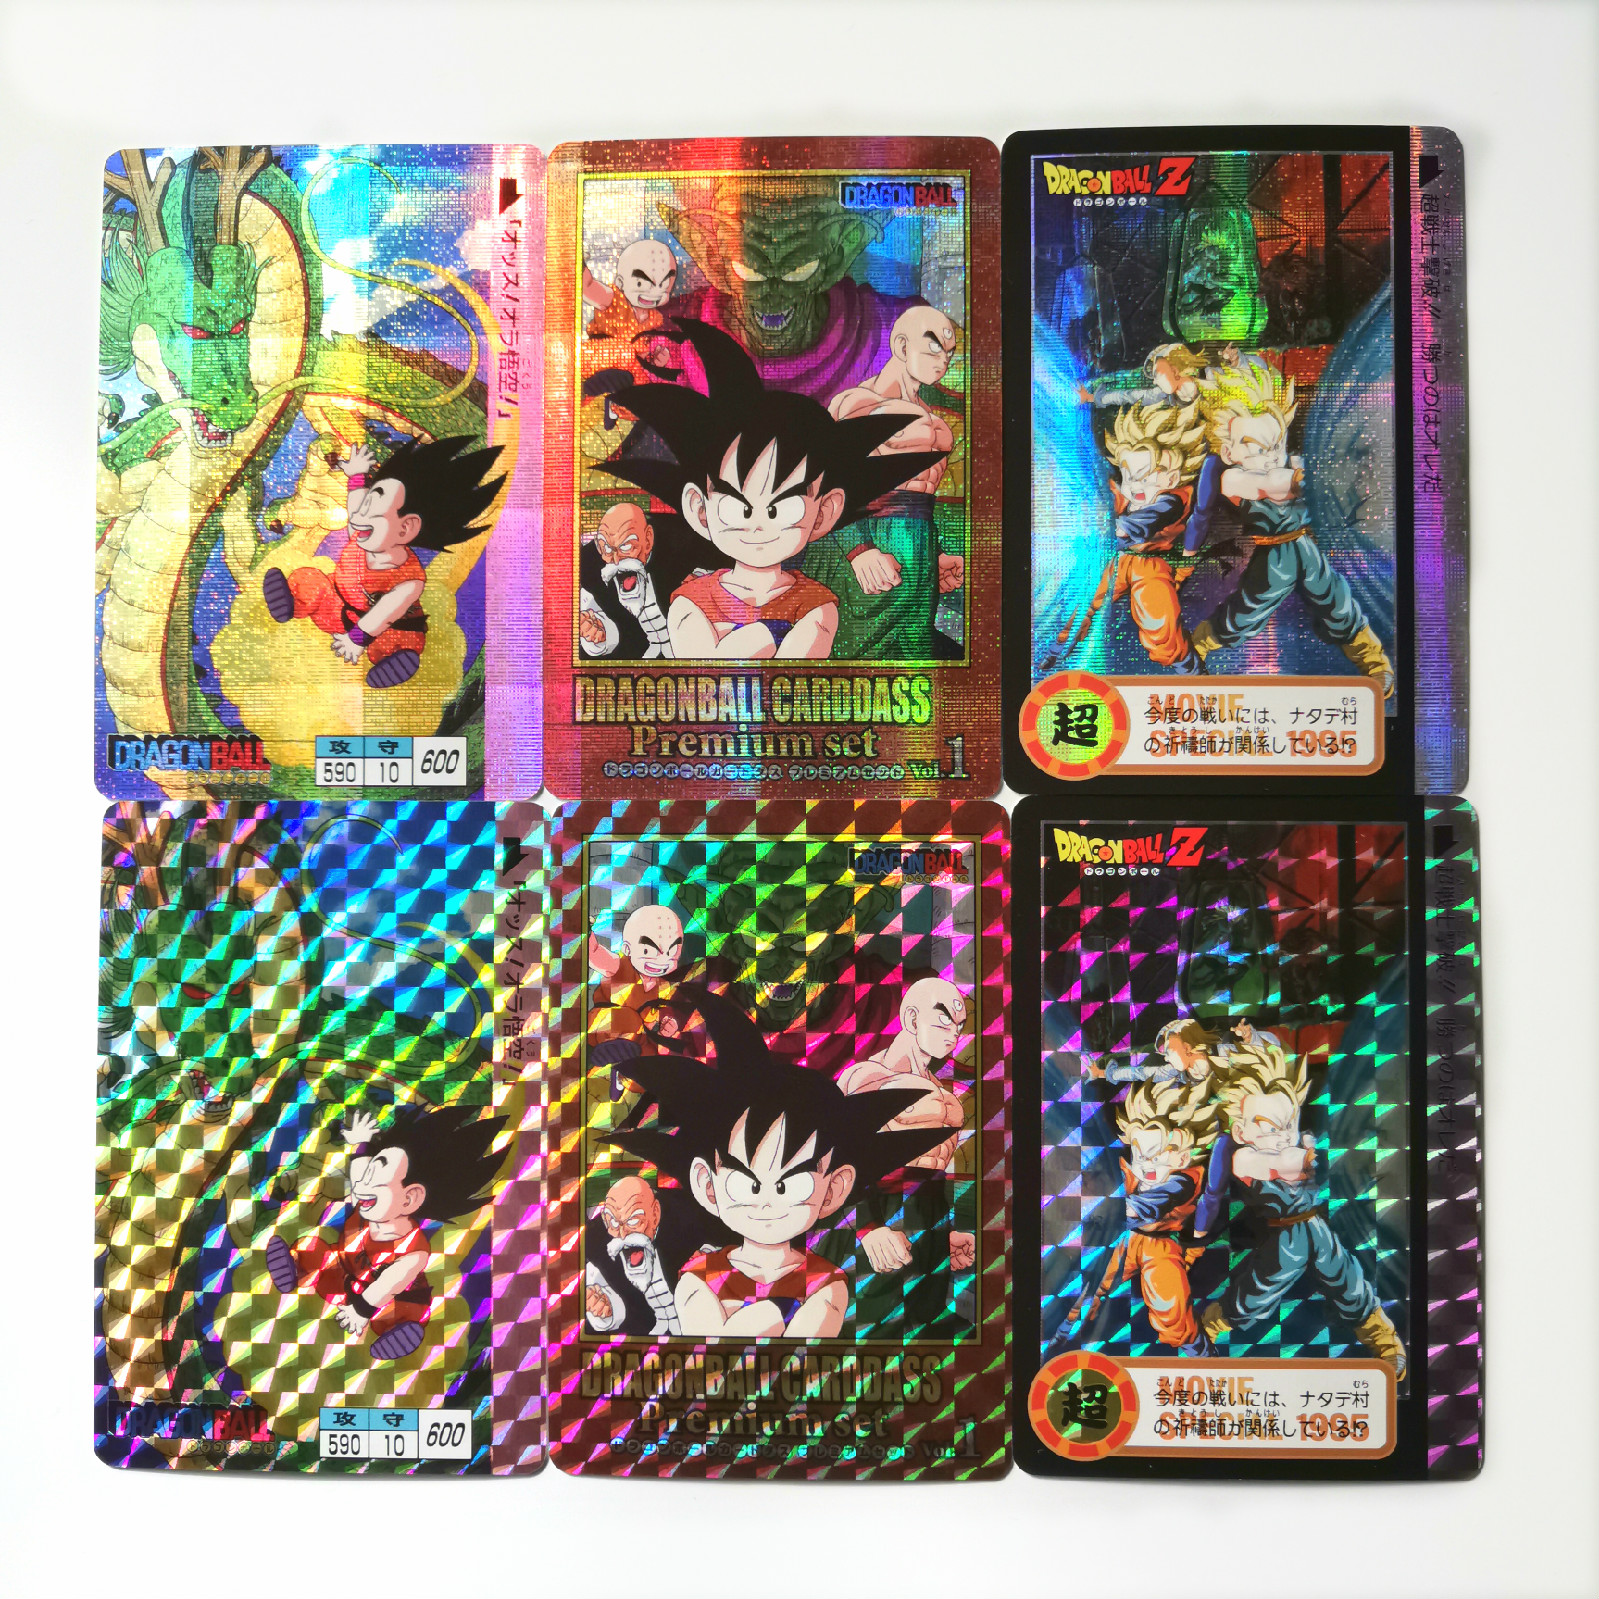 Copy Commemorate Super Dragon Ball Z Heroes Battle Card Ultra Instinct Goku Vegeta Game Collection Cards